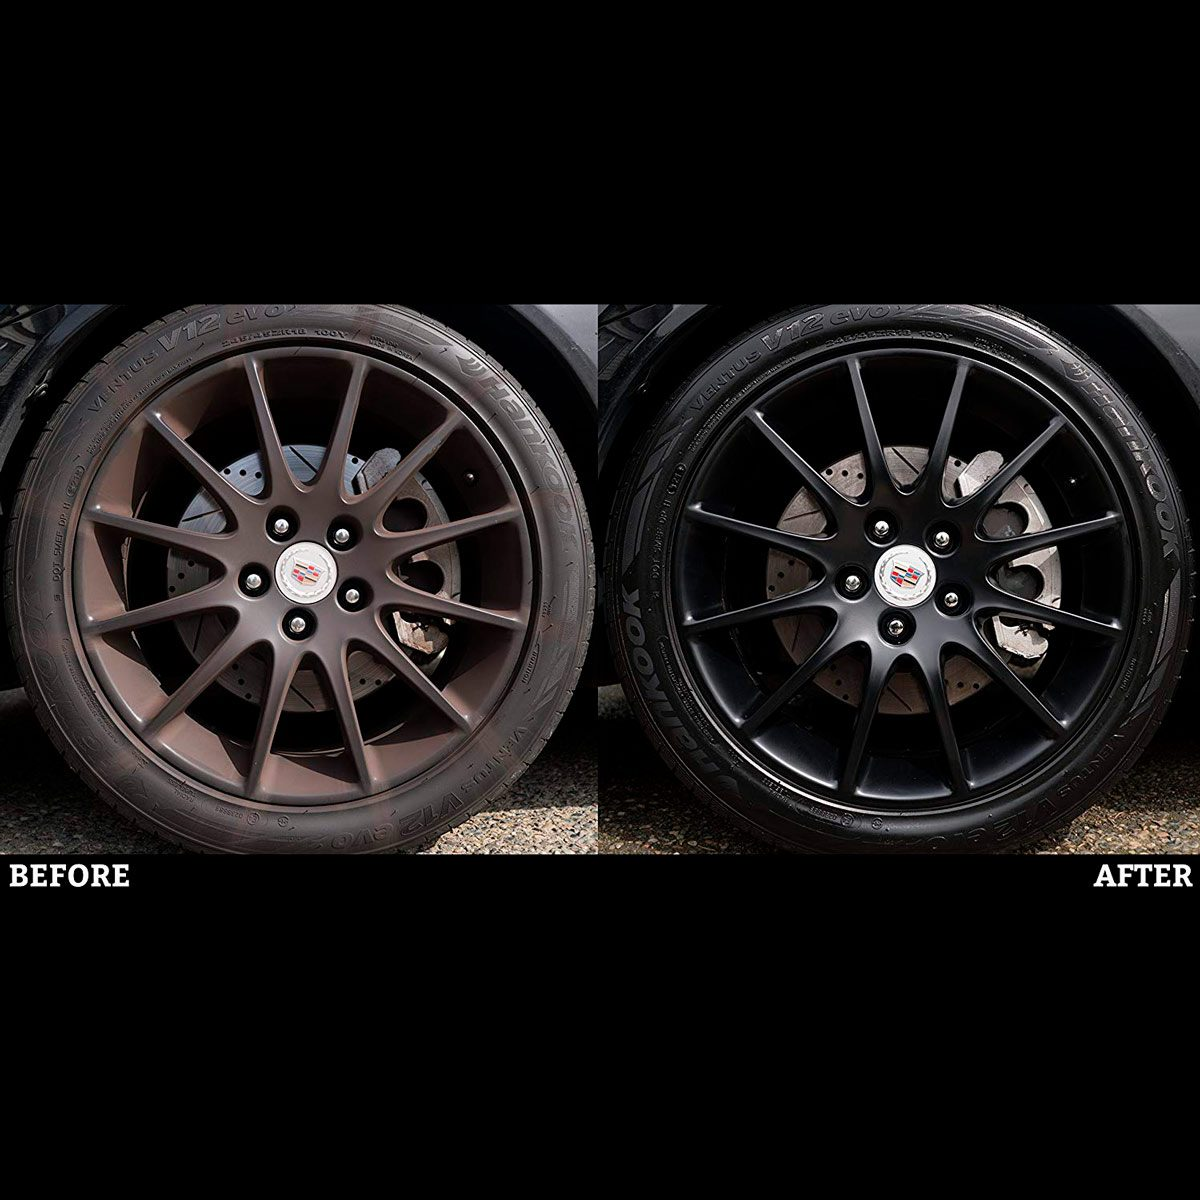 Wheel Cleaning Products for DIY Car